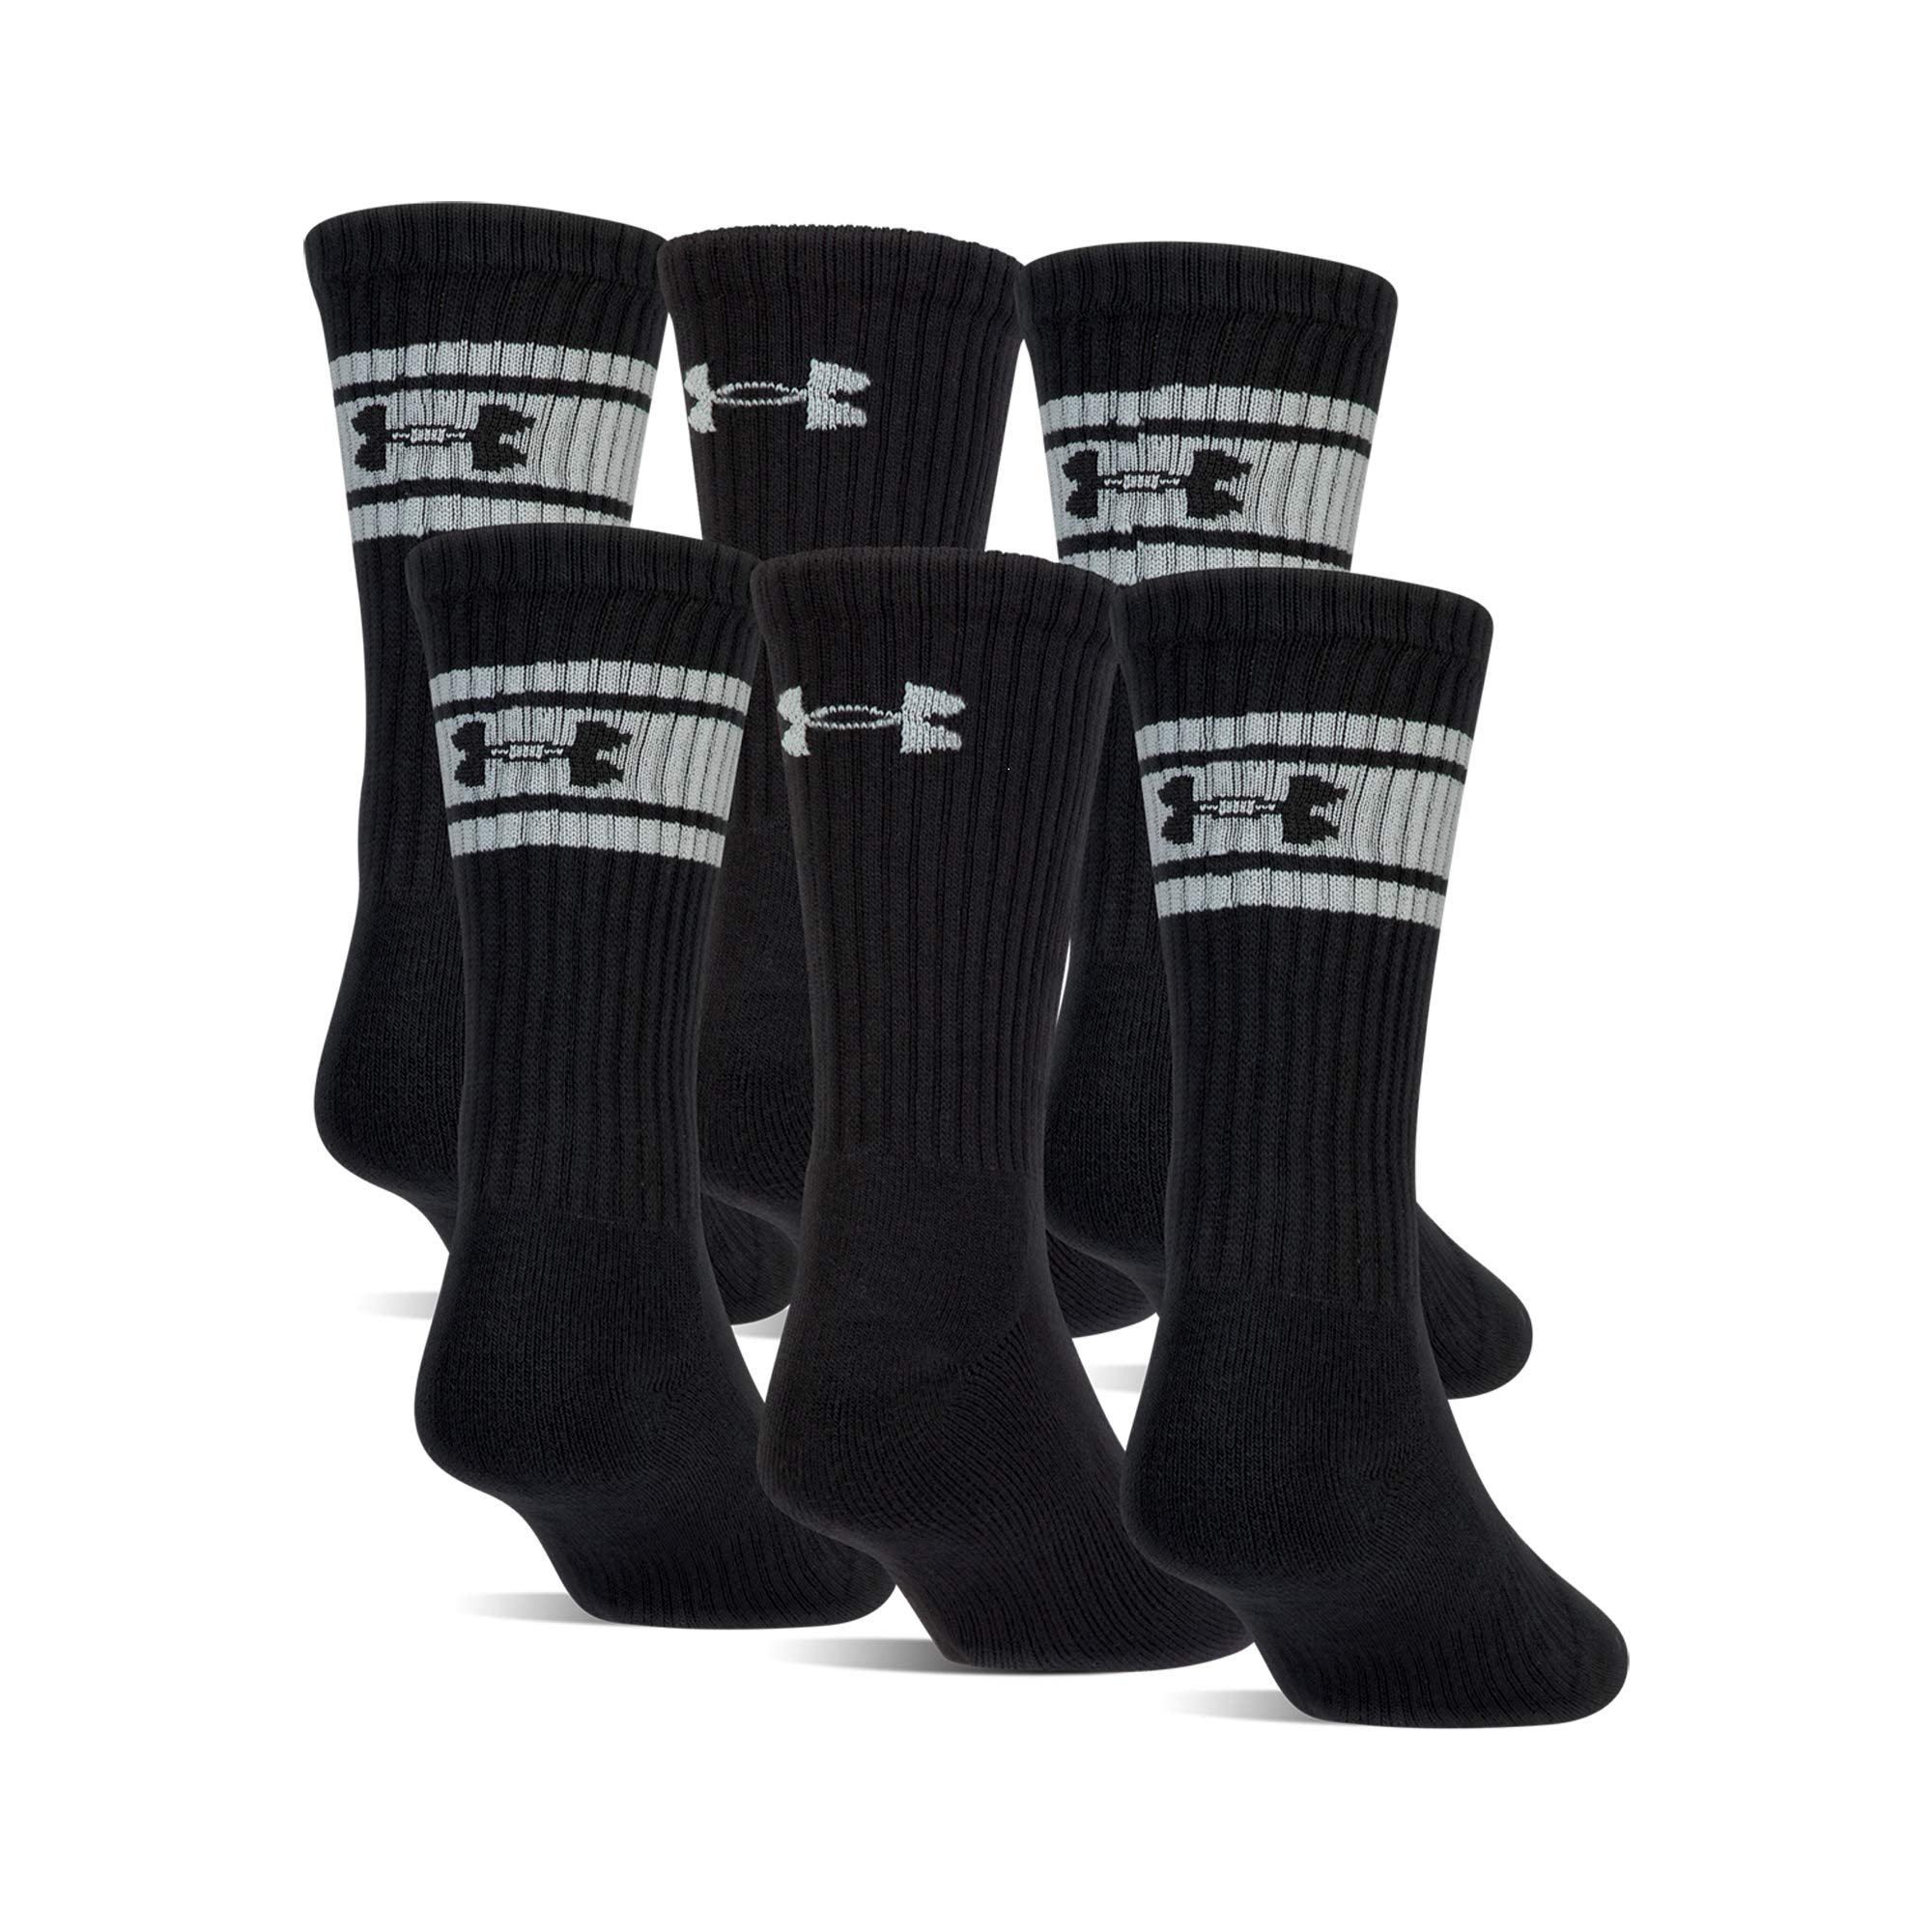 Under Armour Boys Au Youth Charged Cotton 2.0 Crew Socks (Pack 6), Black/White, Youth Large by Under Armour